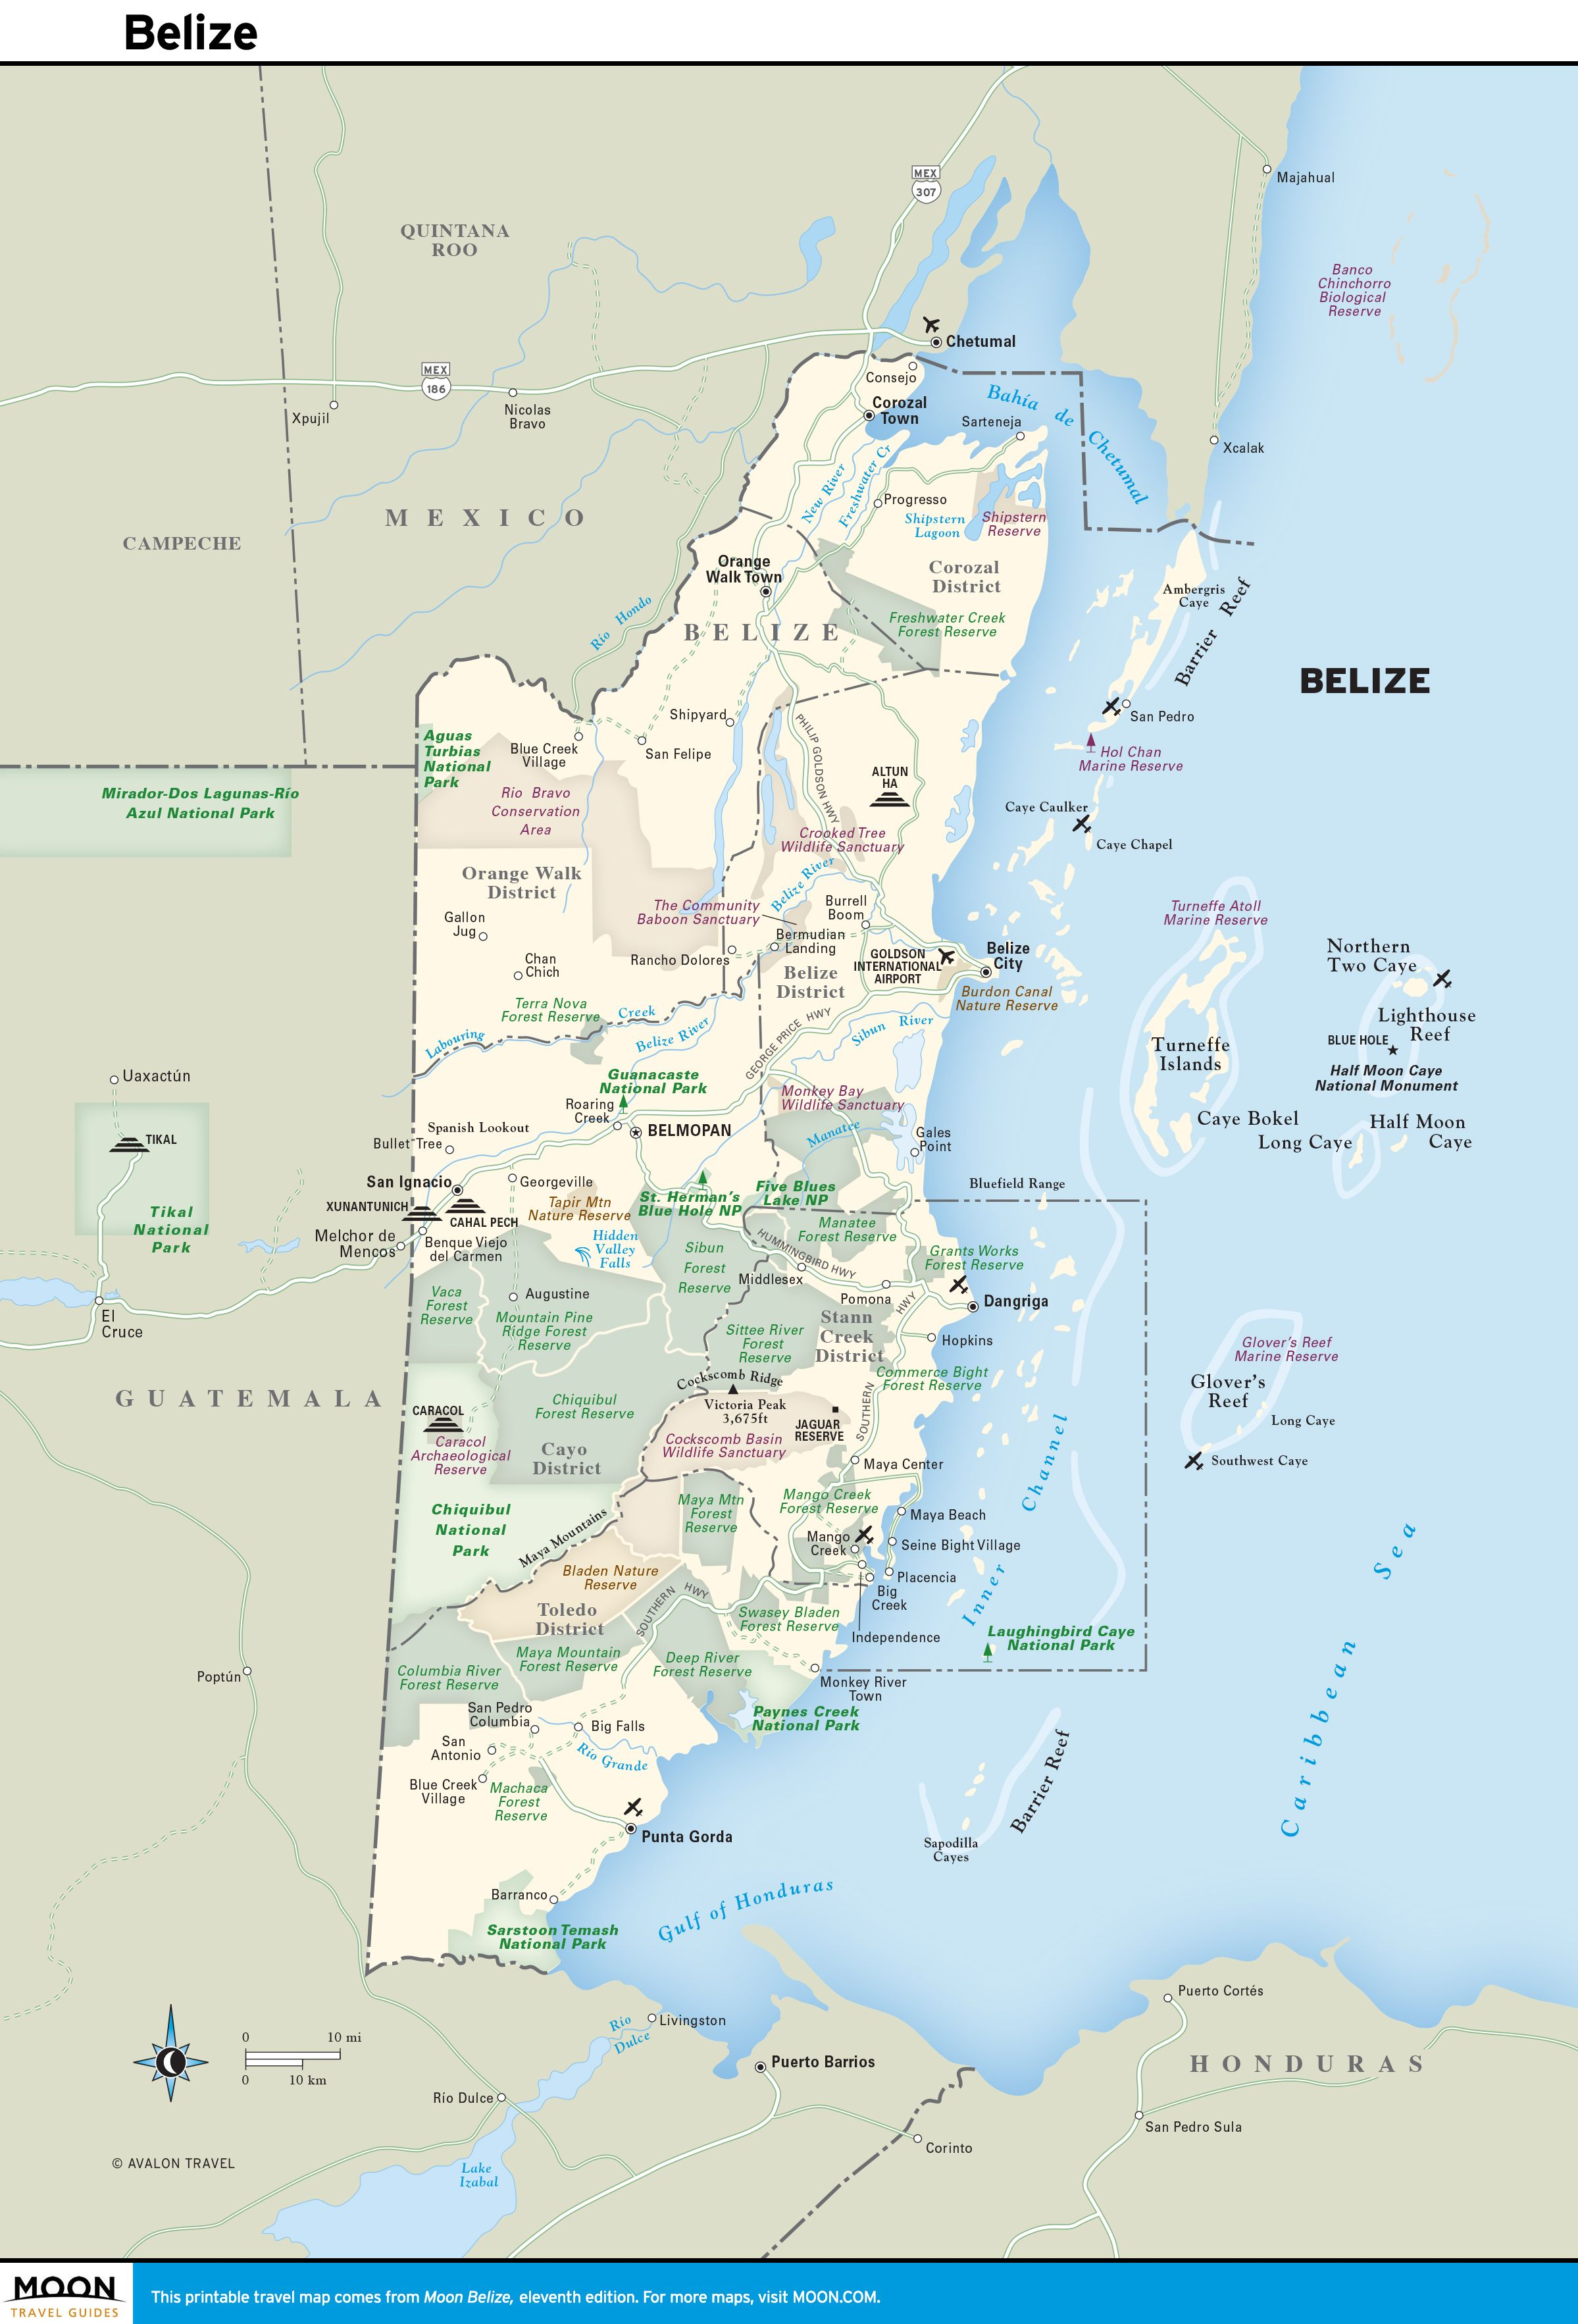 Printable Travel Maps of Belize Belize Travel maps and Belize city